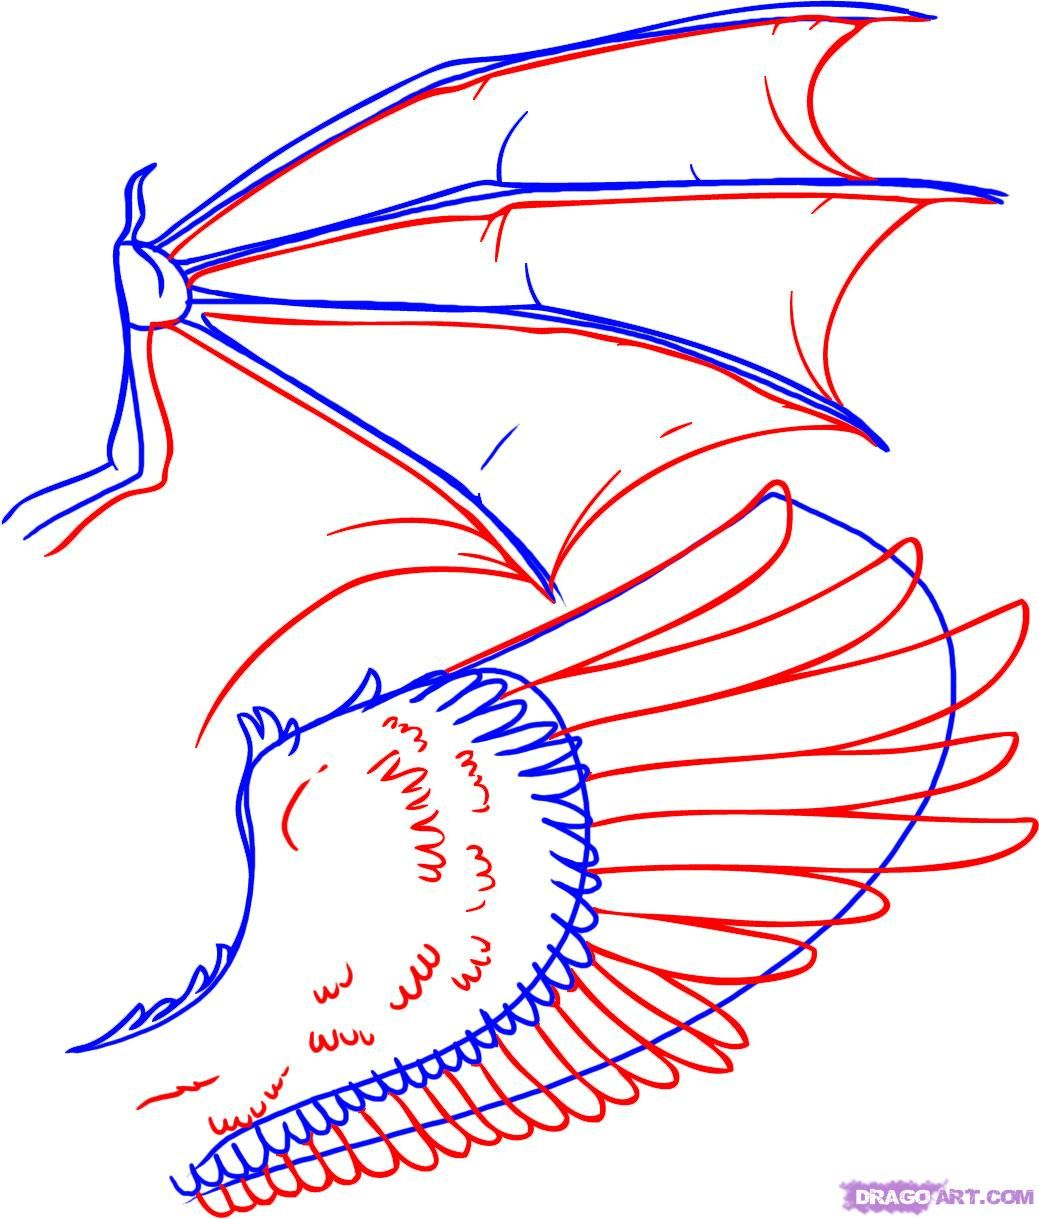 how to draw demon wings - Google Search | Reference ...